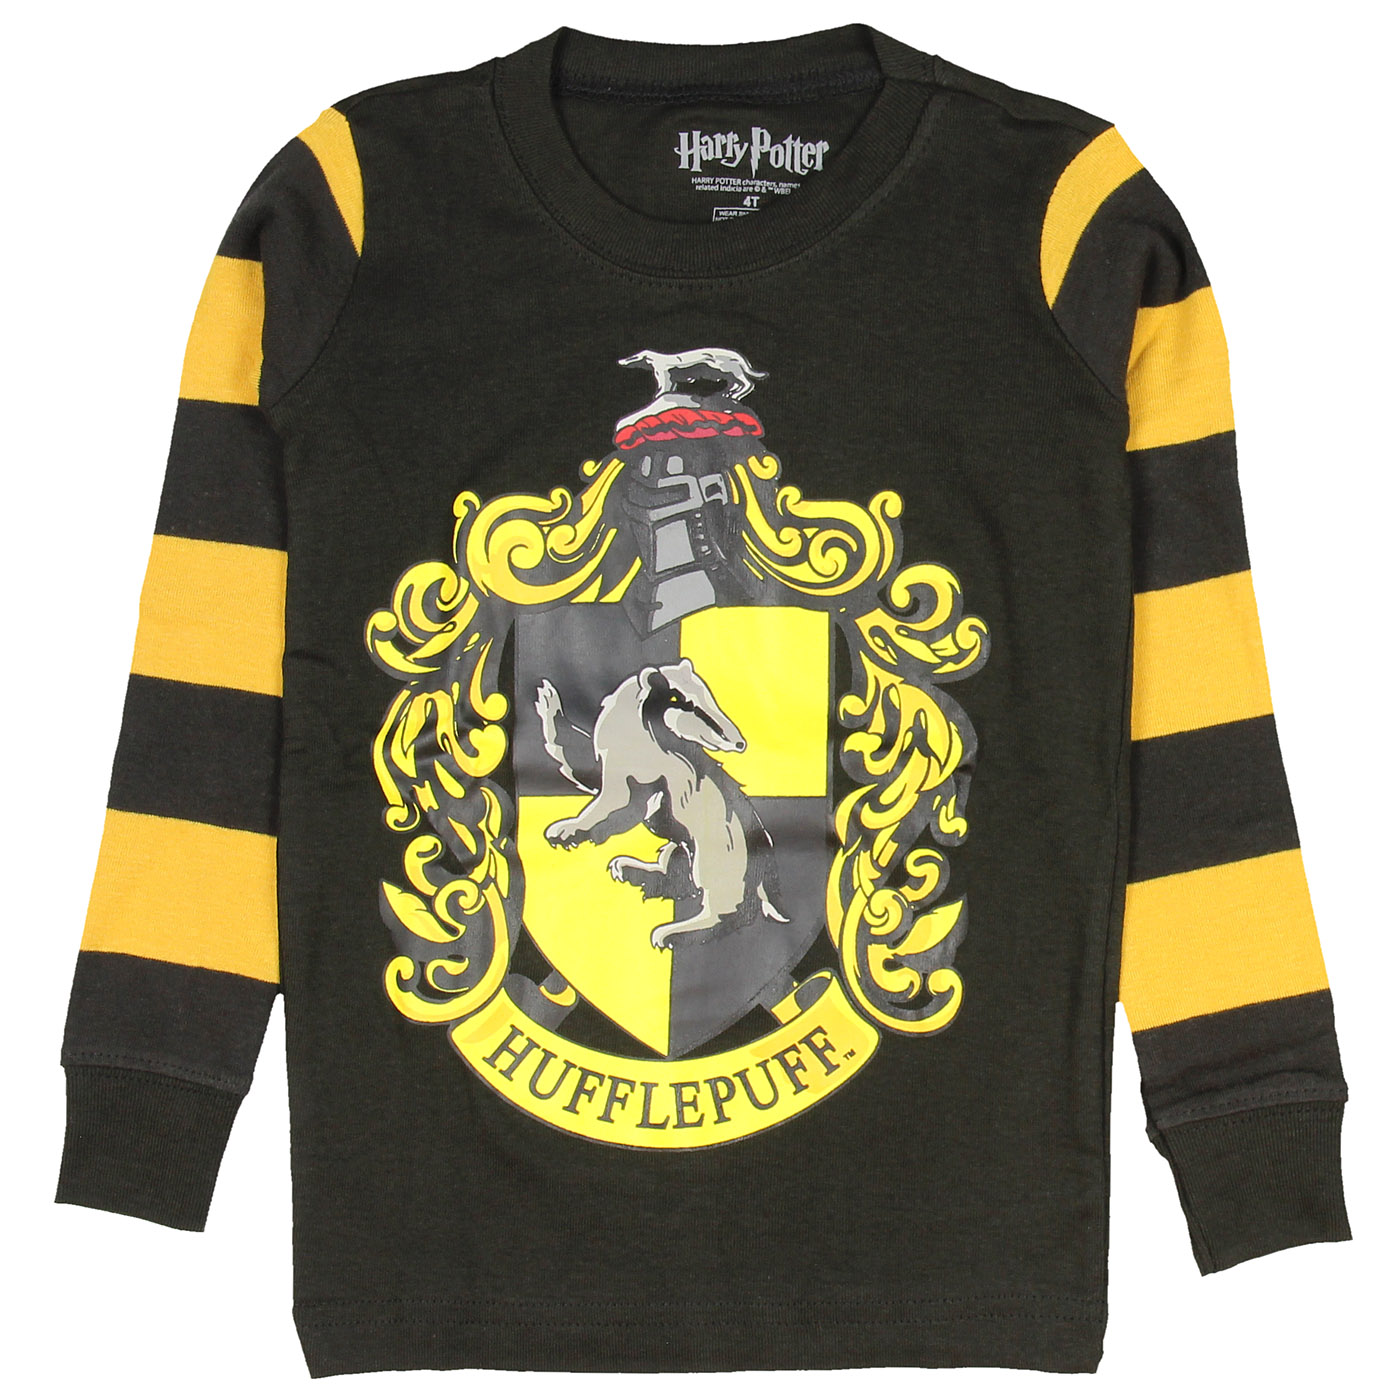 0834d9b72 Intimo - Harry Potter Pajamas Toddlers Kids Boys and Girls House Crest  Striped- Gryffindor, Ravenclaw, Hufflepuff, Slytherin - Walmart.com